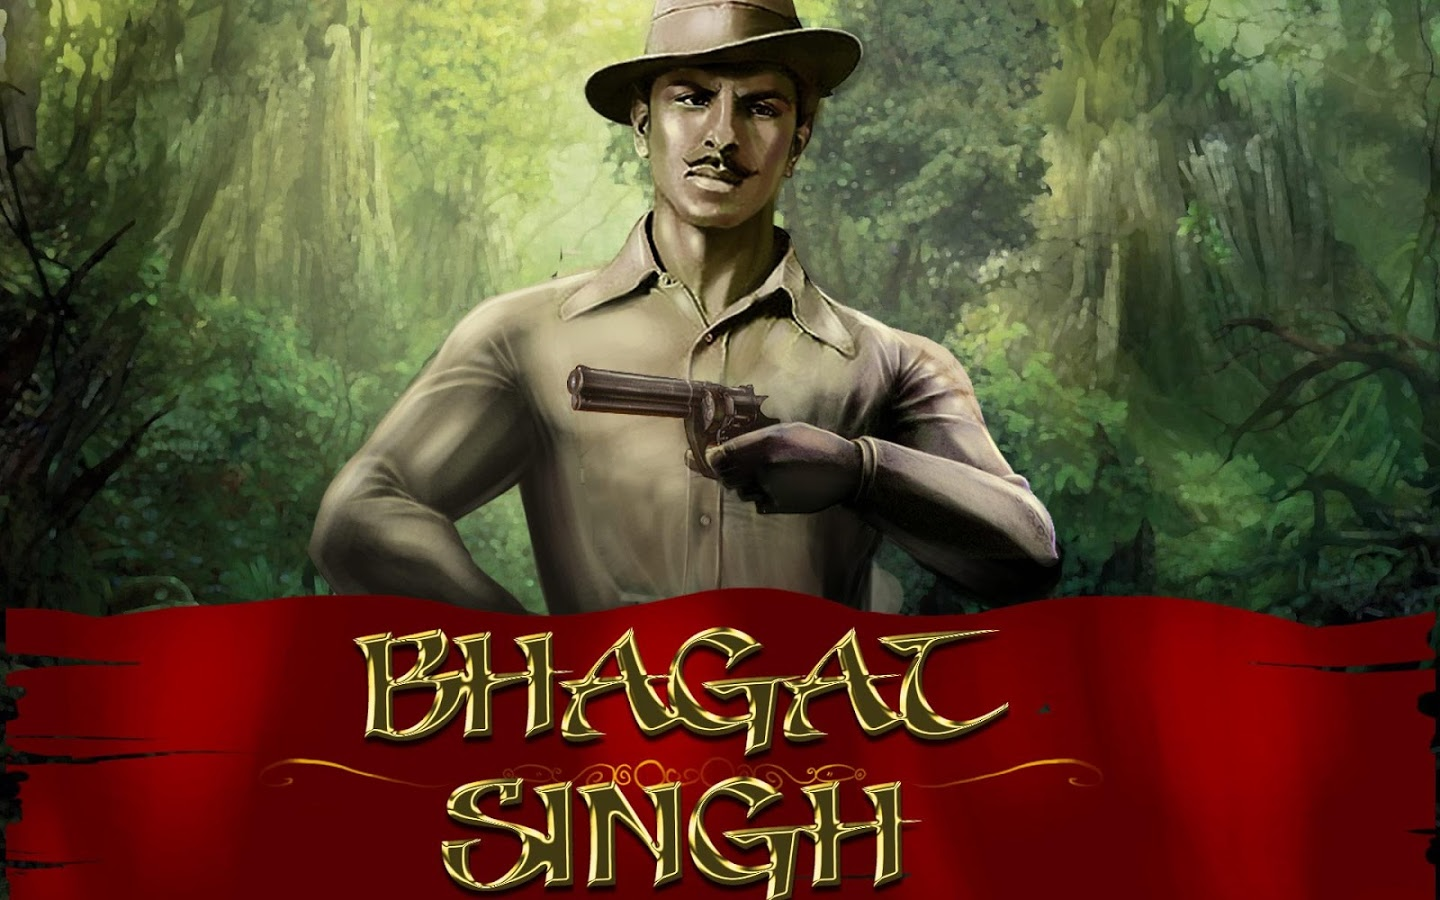 India Will Never Forget This Dropout's Sacrifice - Remembering Bhagat Singh  1 – Bhagat Singh